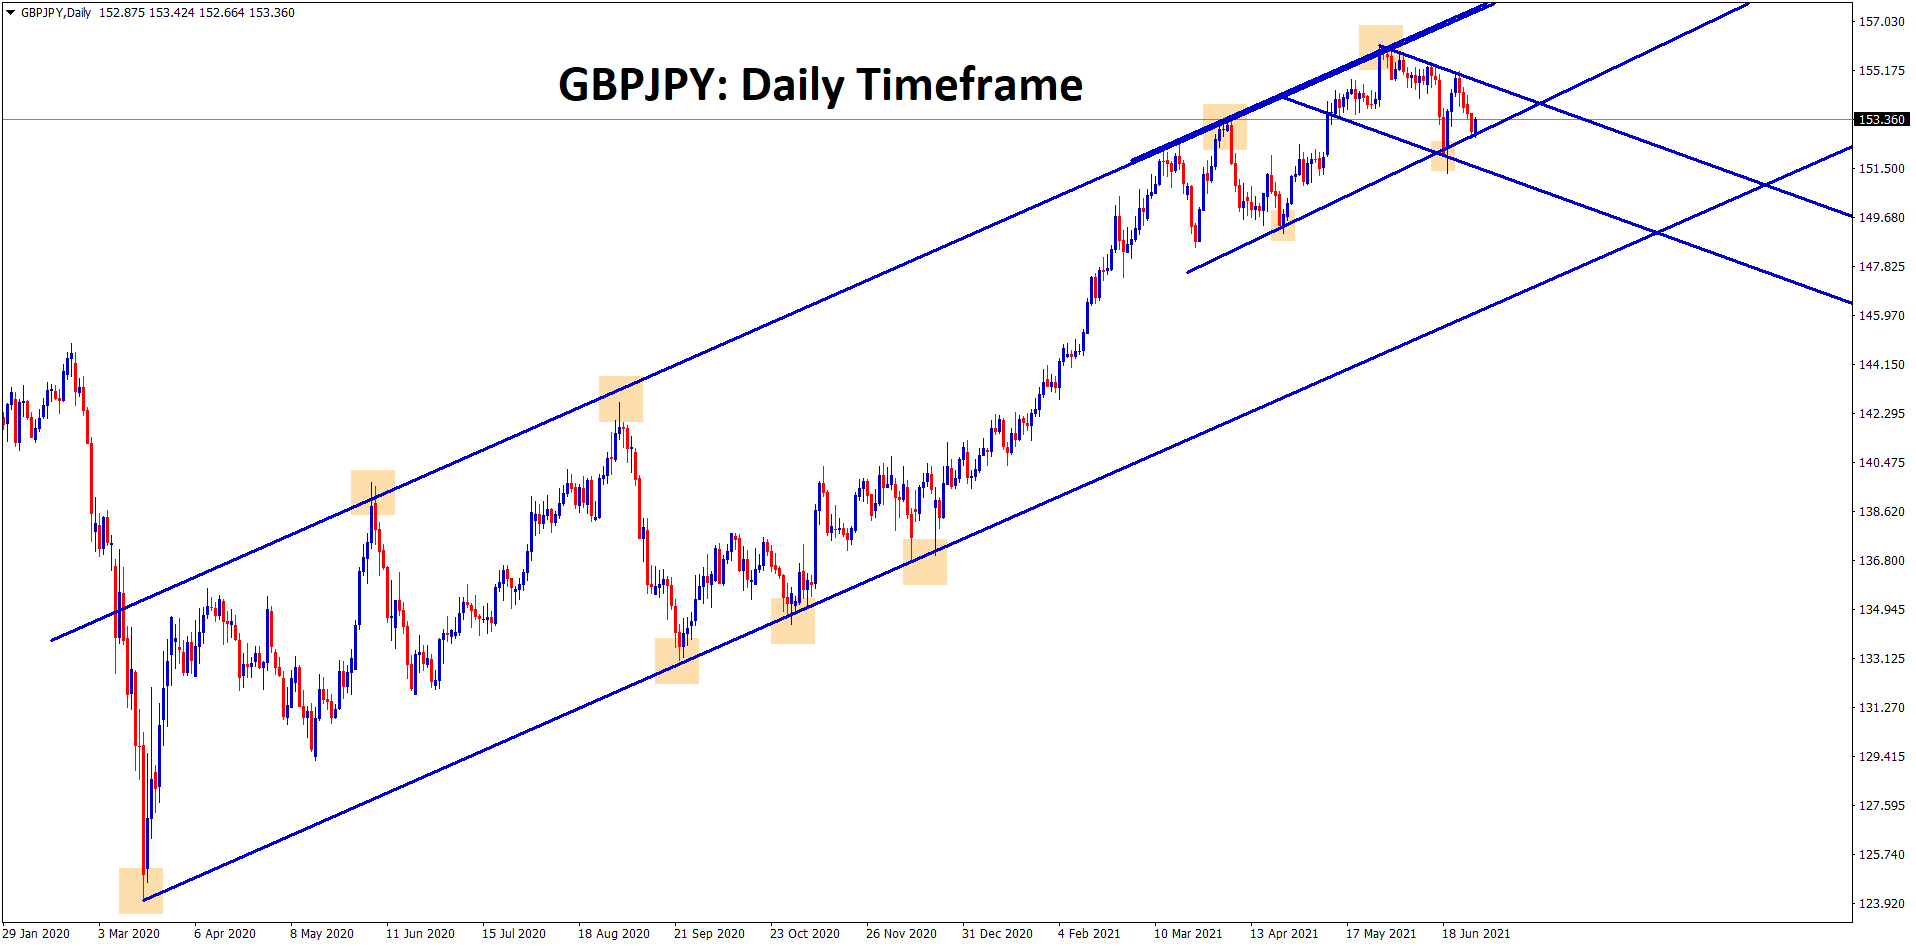 GBPJPY is still moving between the channel ranges